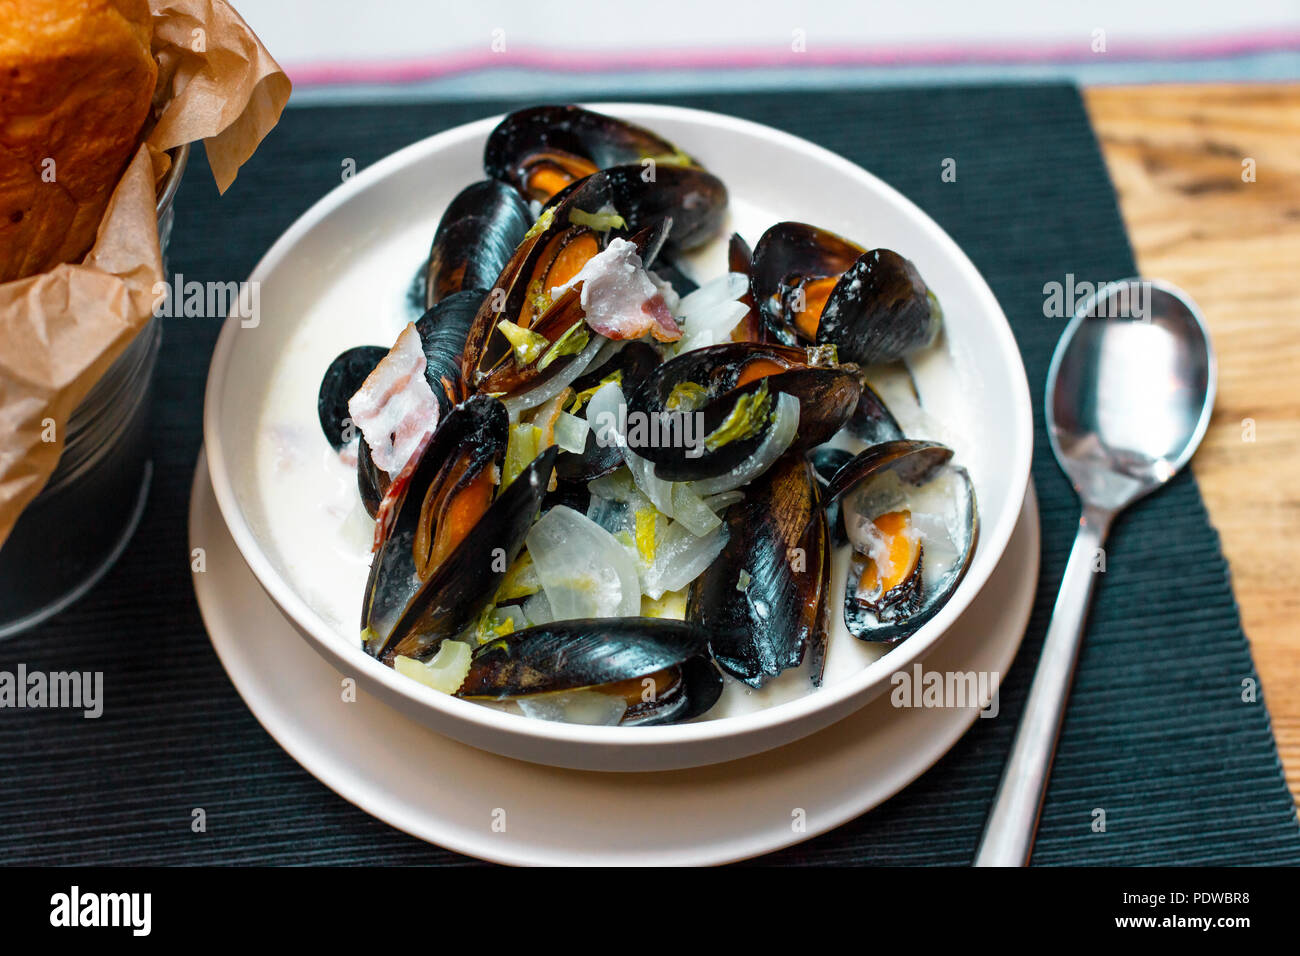 Mussels with onions and bacon in cream sauce in deep plate - Stock Image